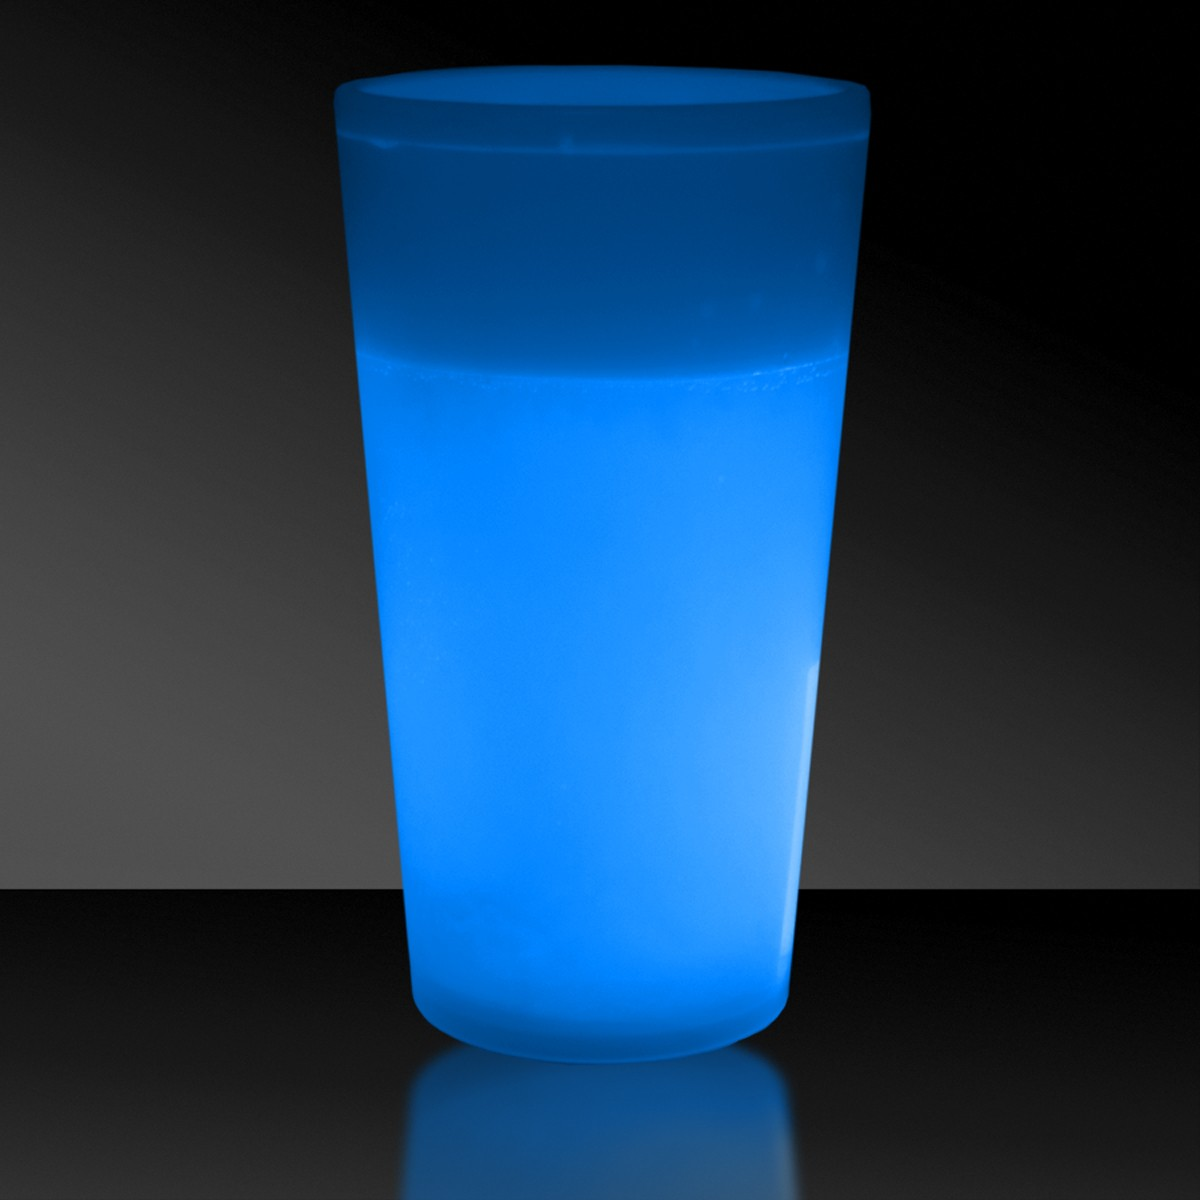 NEW - 12 OZ. BLUE GLOW CUP